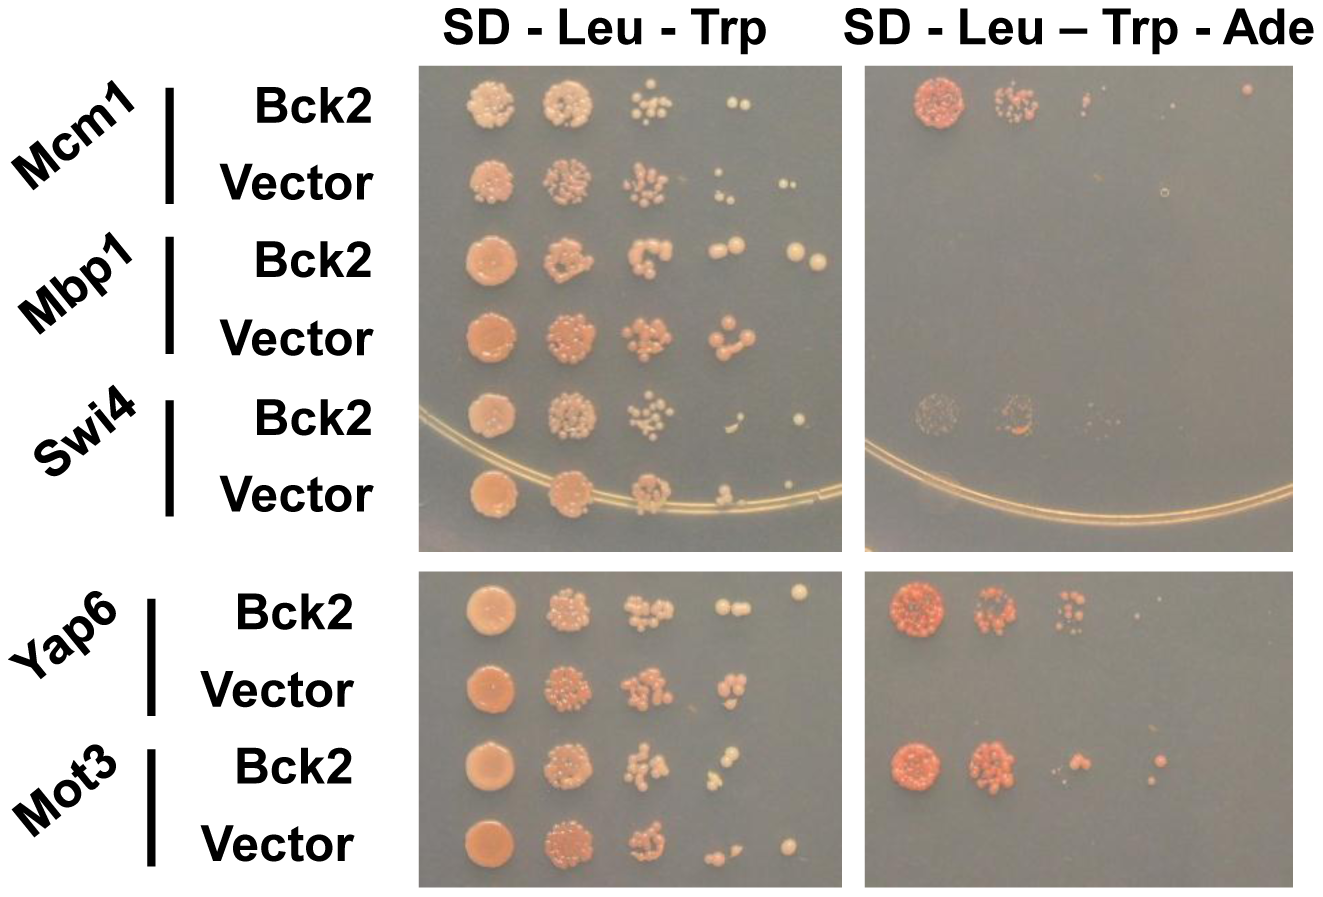 Bck2-interacting proteins identified in a genome-wide yeast two-hybrid screen.